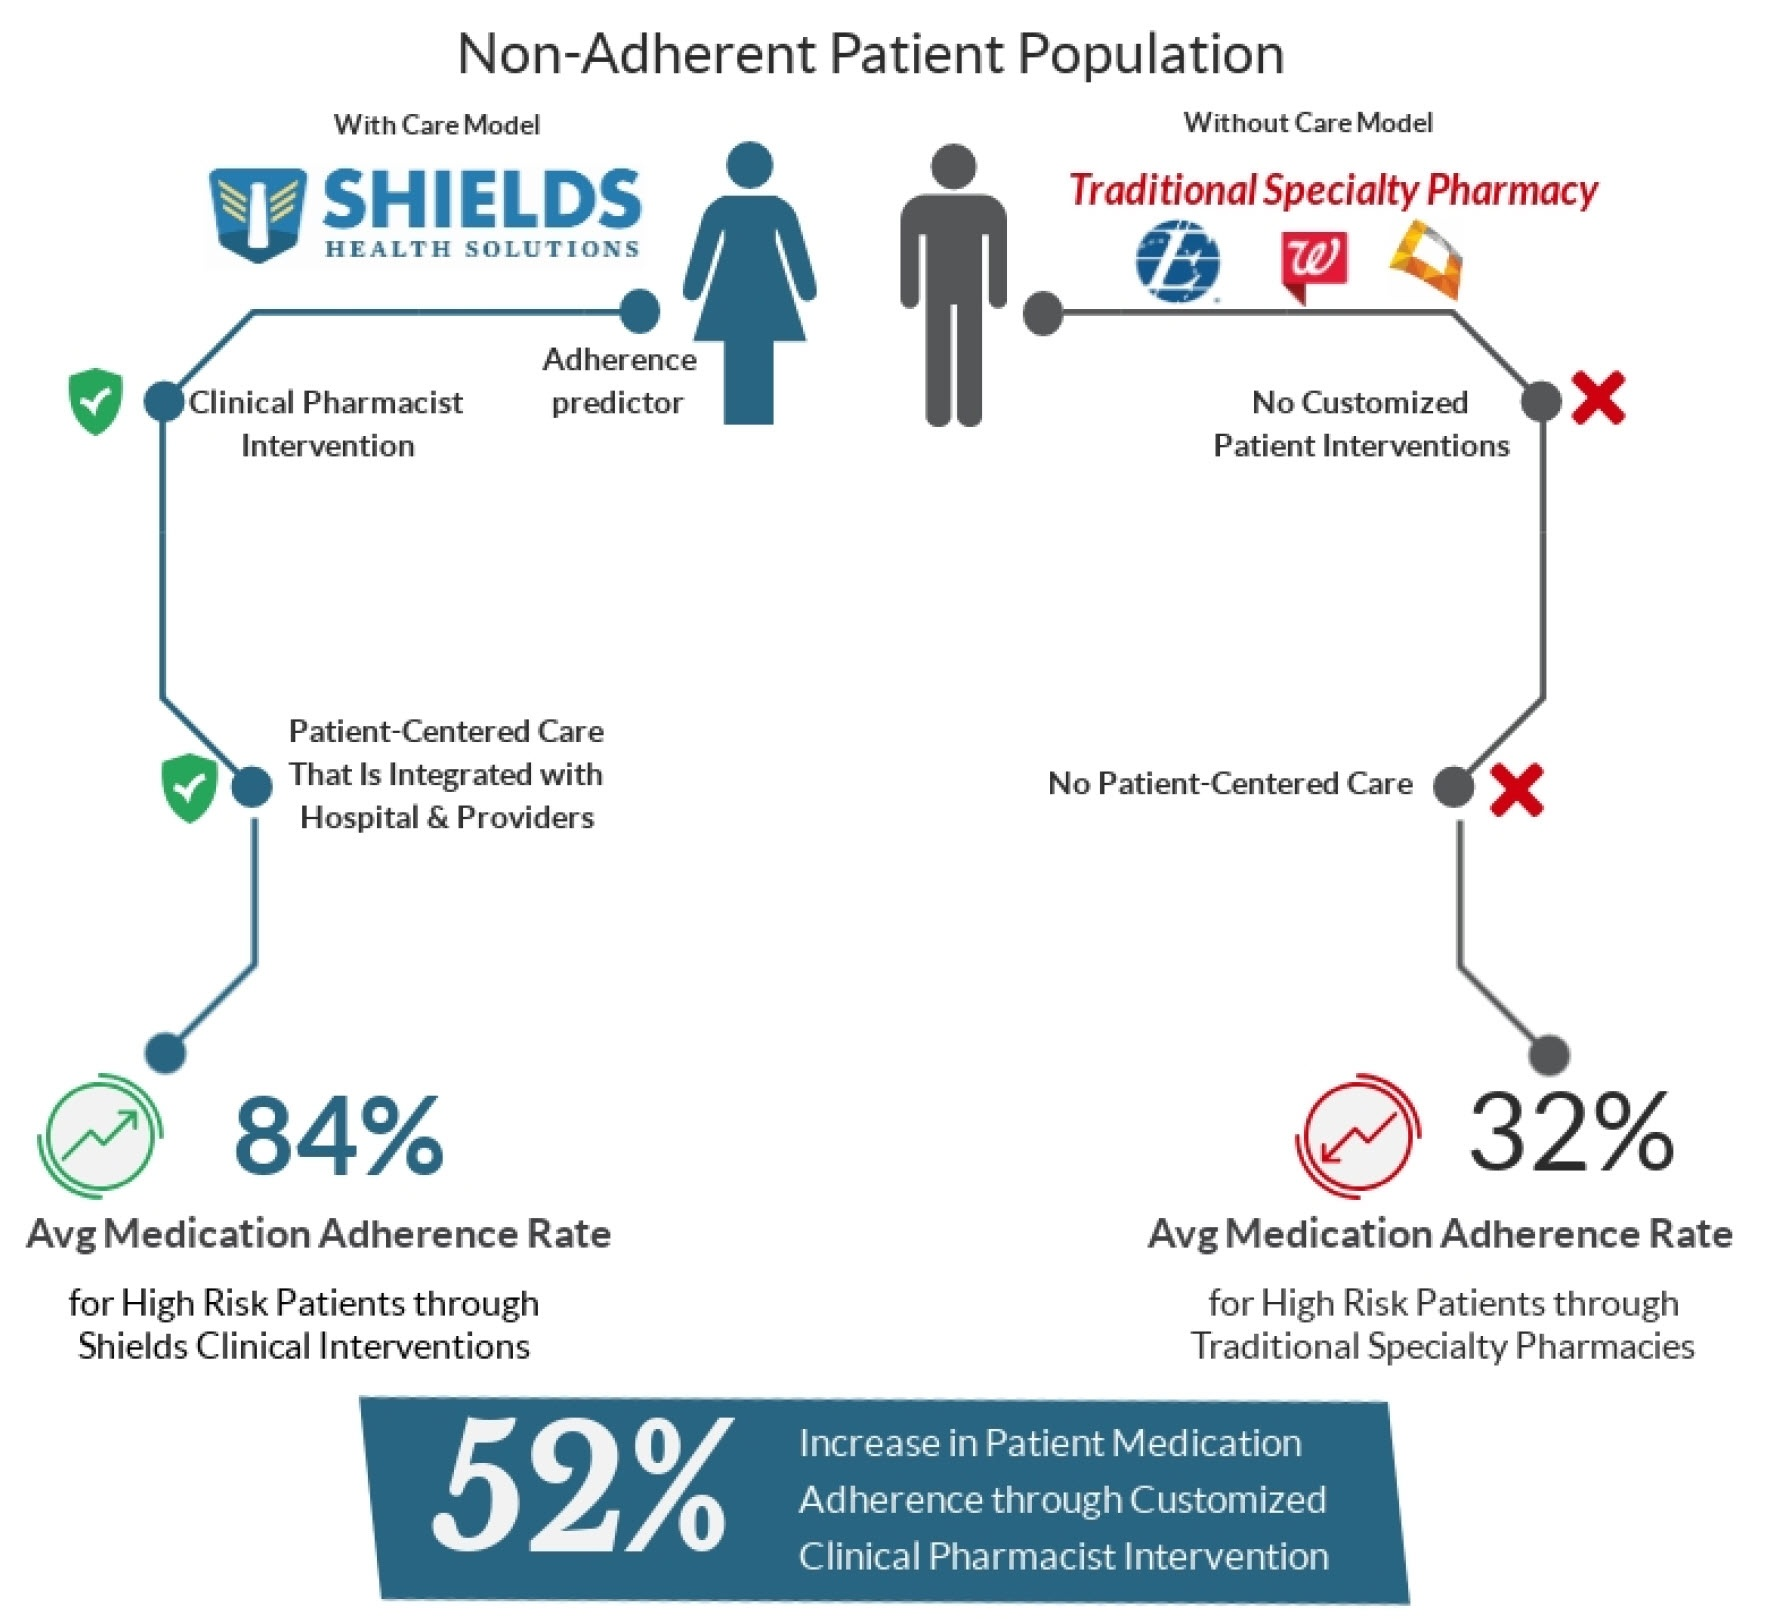 solving non-adherence in high risk patients - graphic 9-6-18.jpg